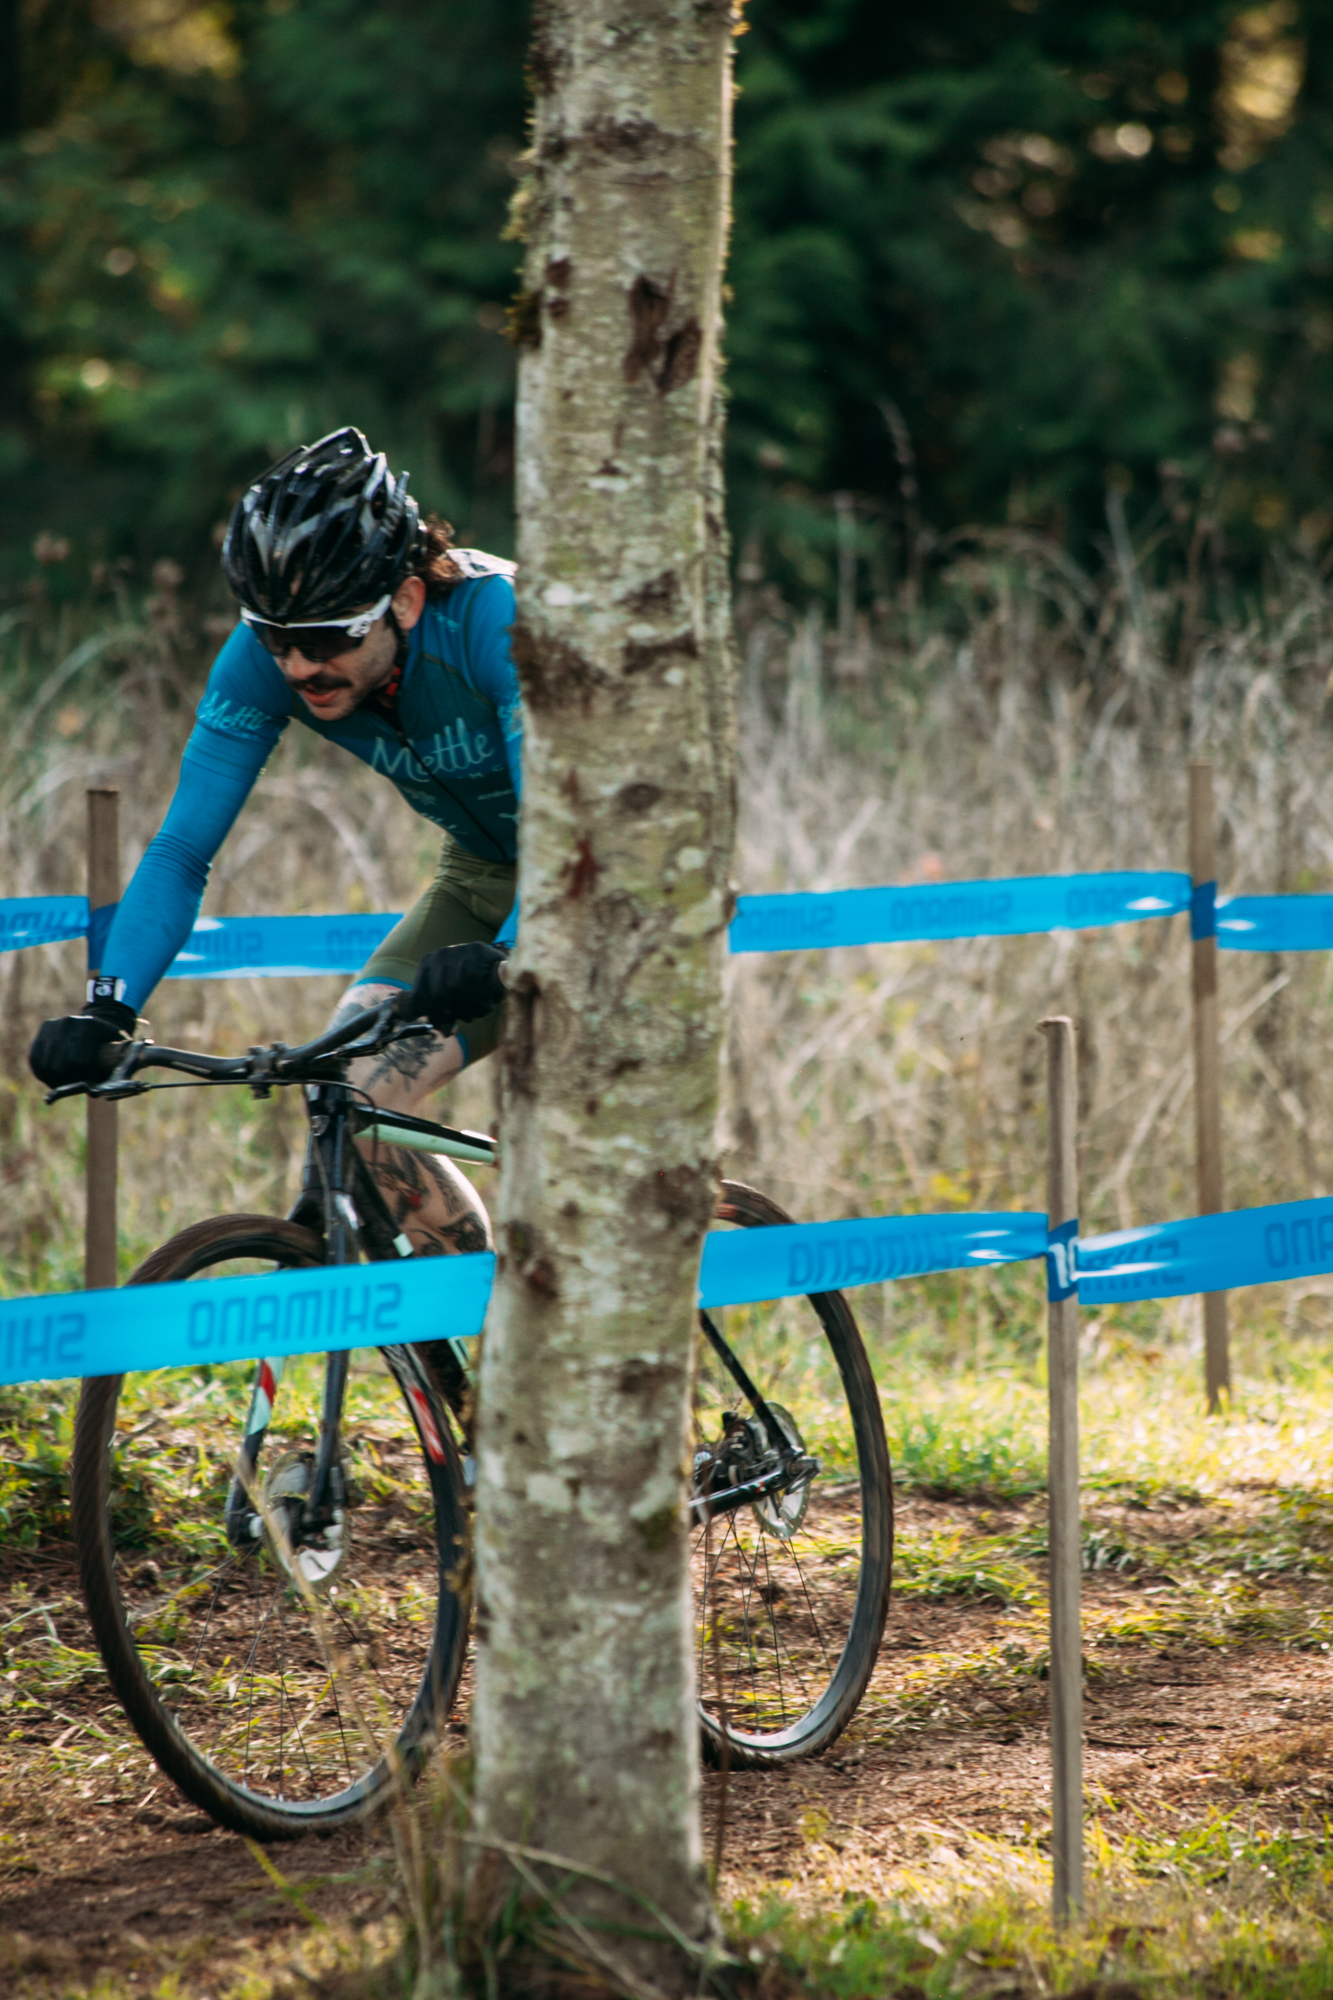 Cyclocross18_CCCX_RainierHS-158-mettlecycling.jpg